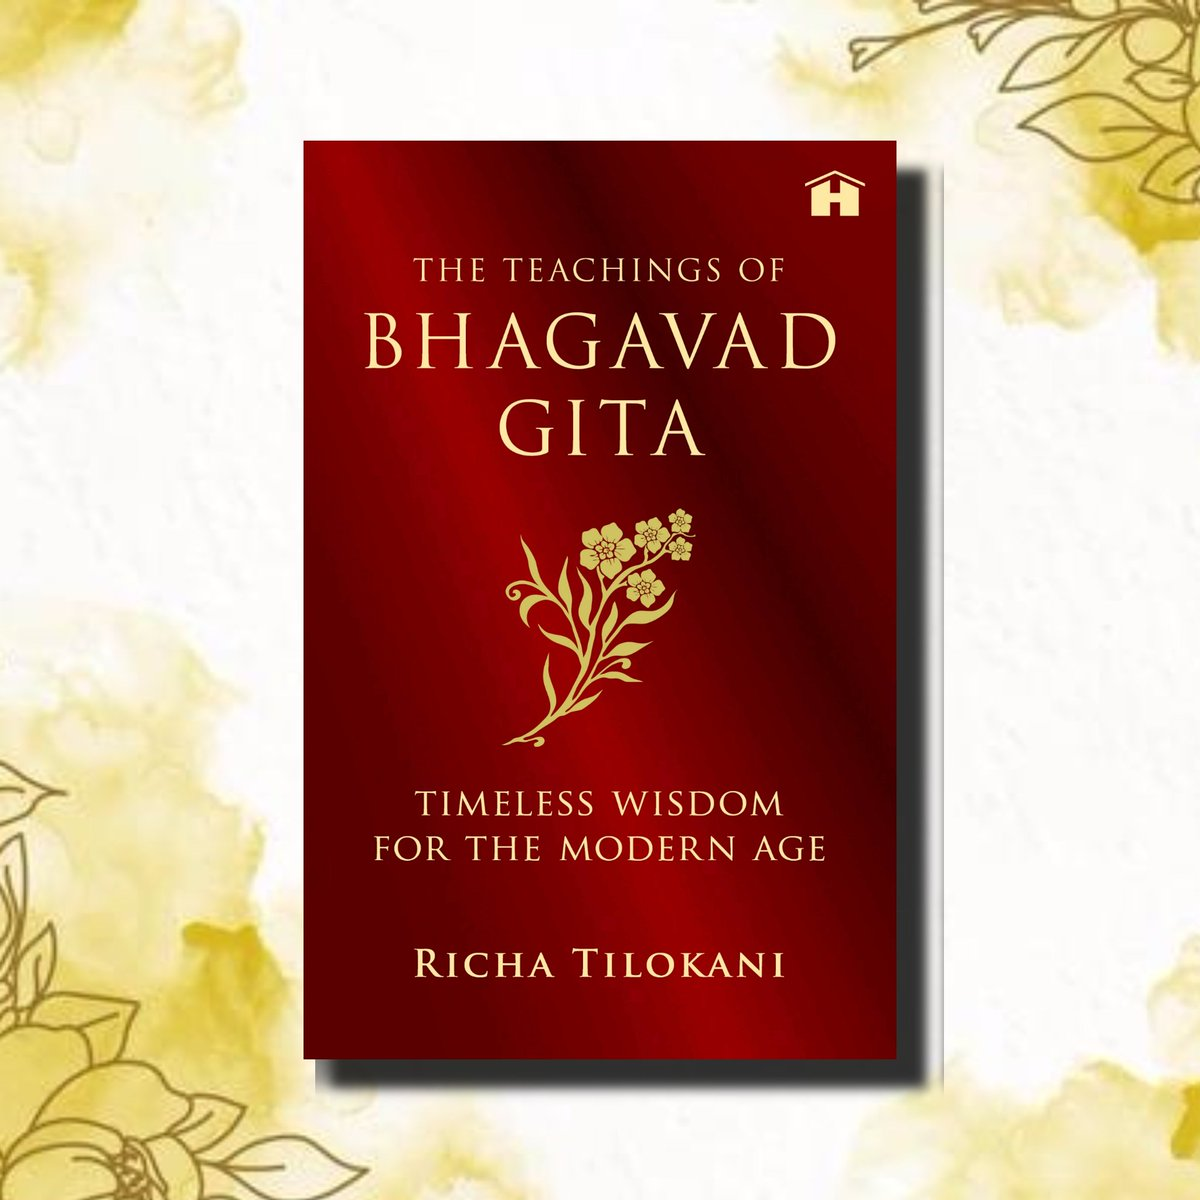 Why does one face sorrow and problems in life? How can one get in touch with higher consciousness and strike a balance between the spiritual and worldly goals?   Click on the link in our bio to get this book ASAP!    #wisdomforthemodernage #bhagavadgita